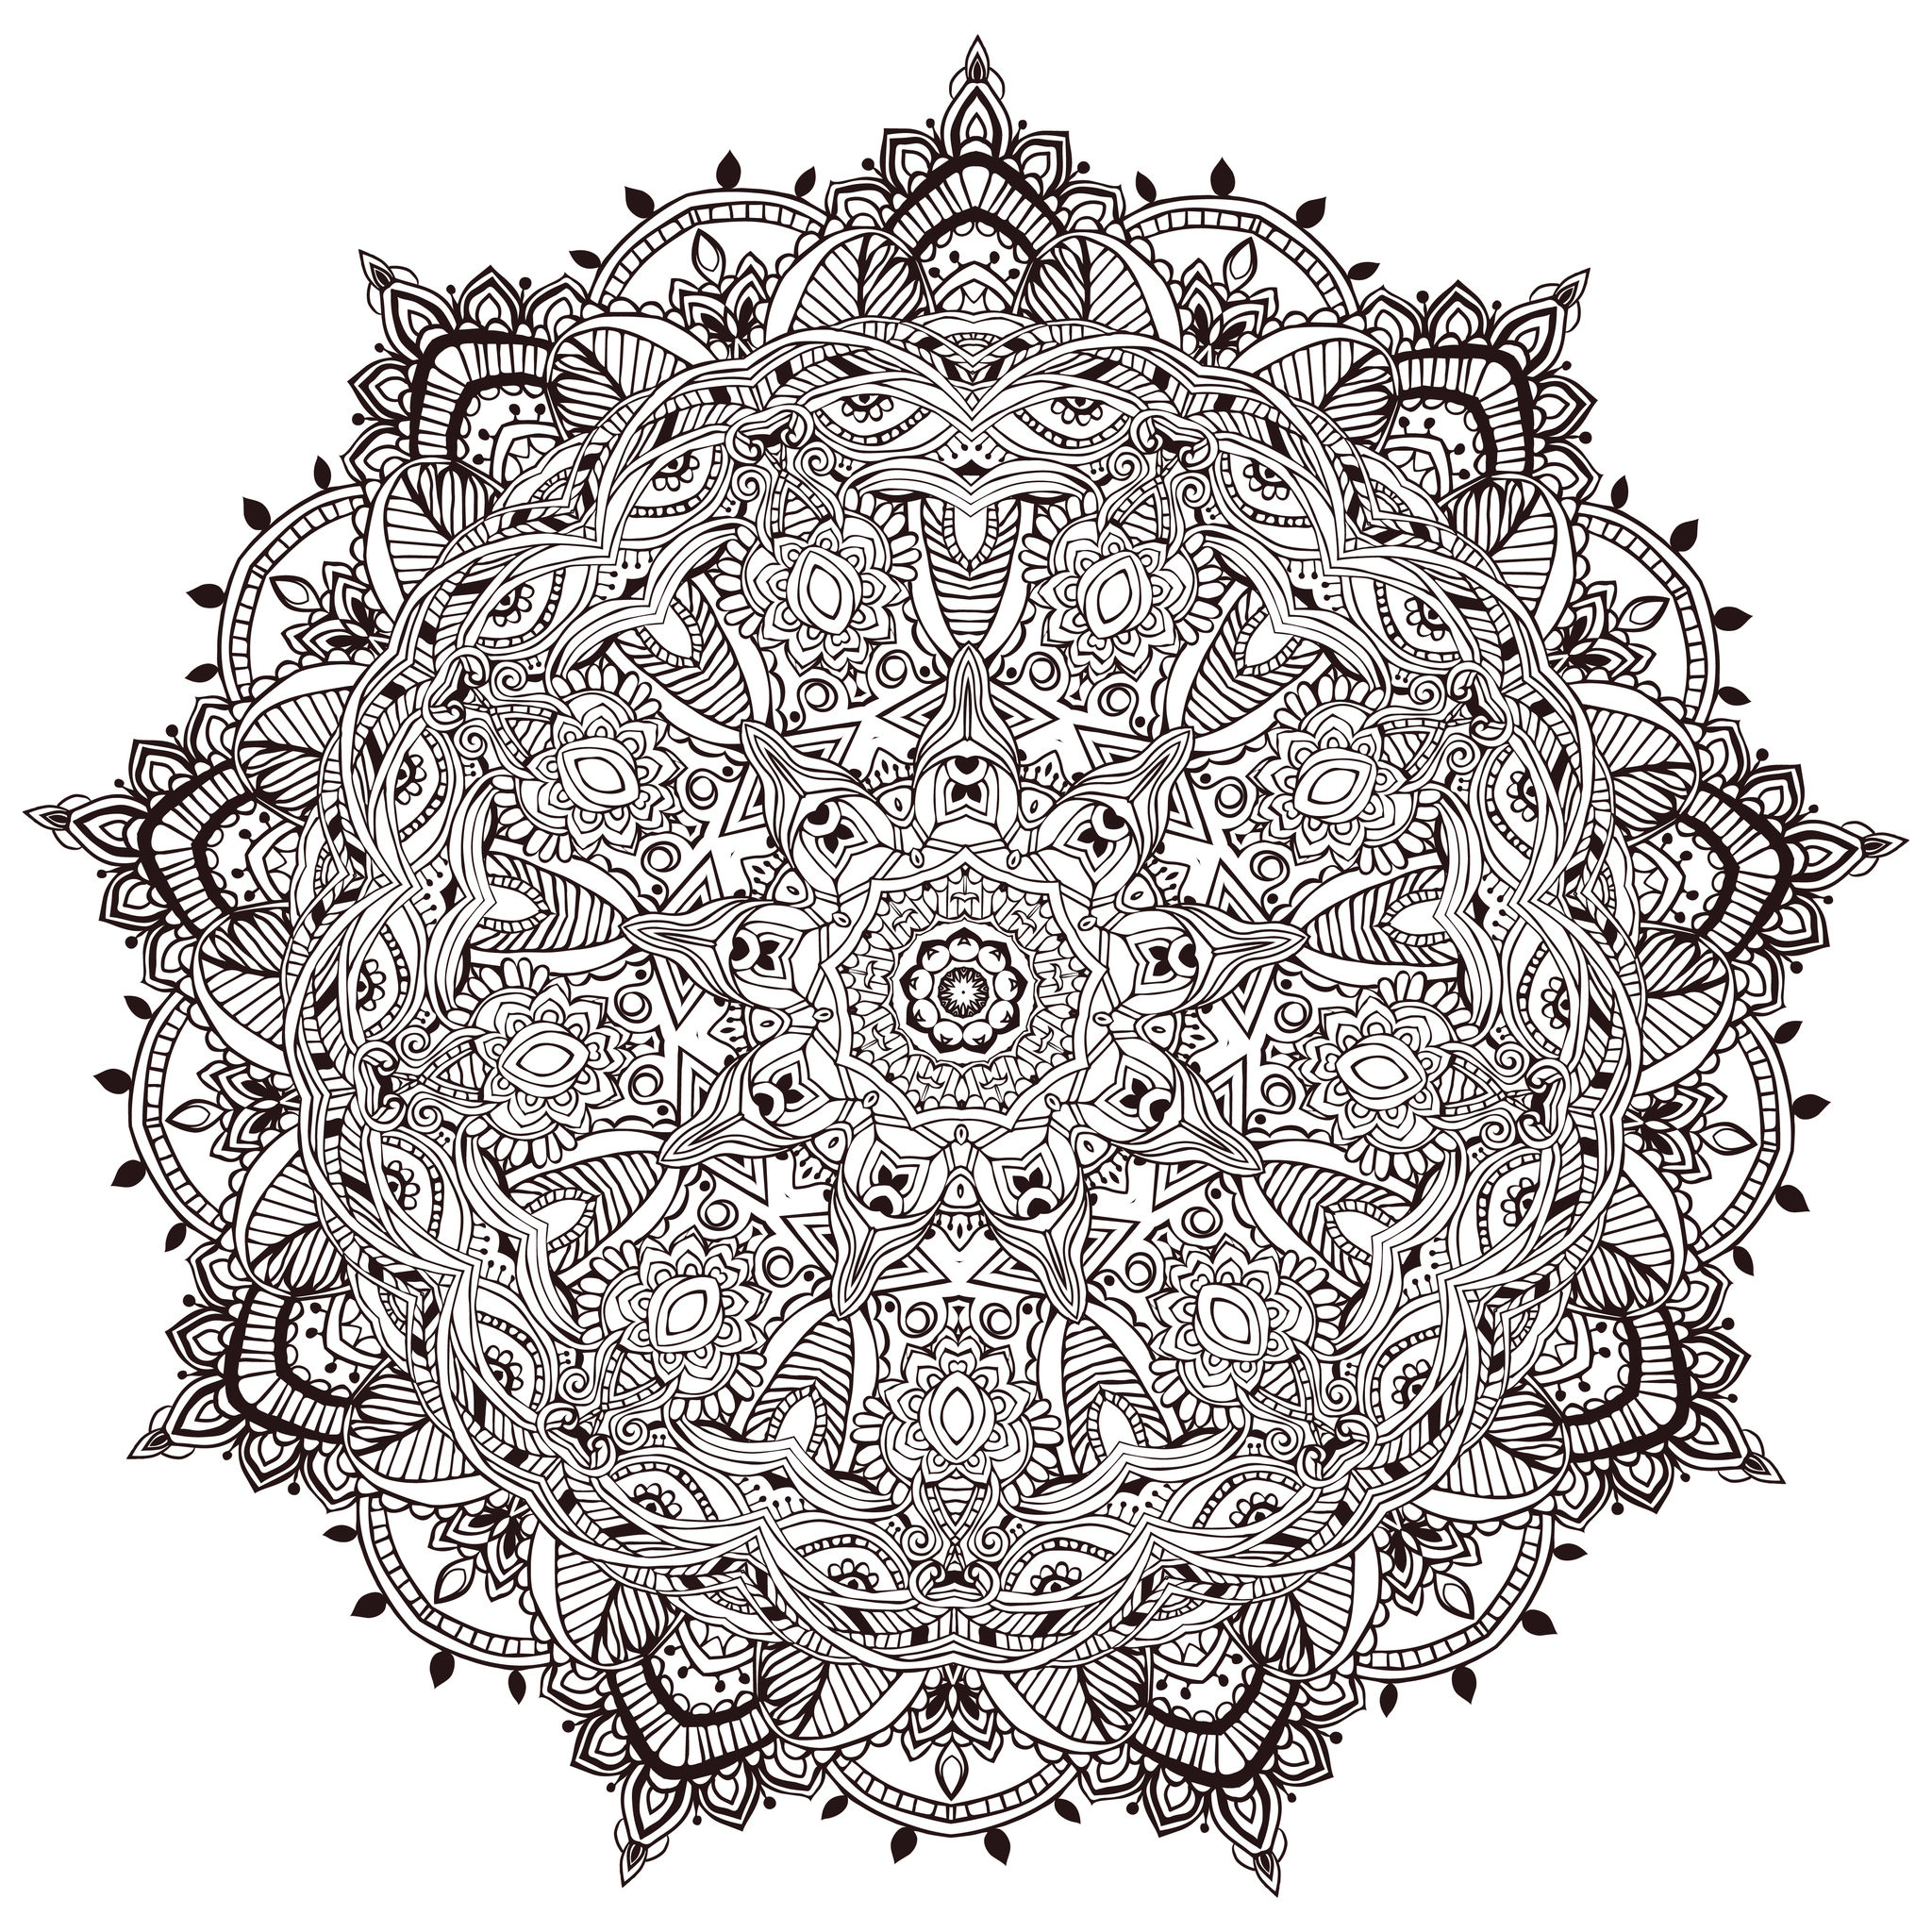 Printable coloring pages intricate - Get Free High Quality Hd Wallpapers Printable Coloring Pages Intricate Designs